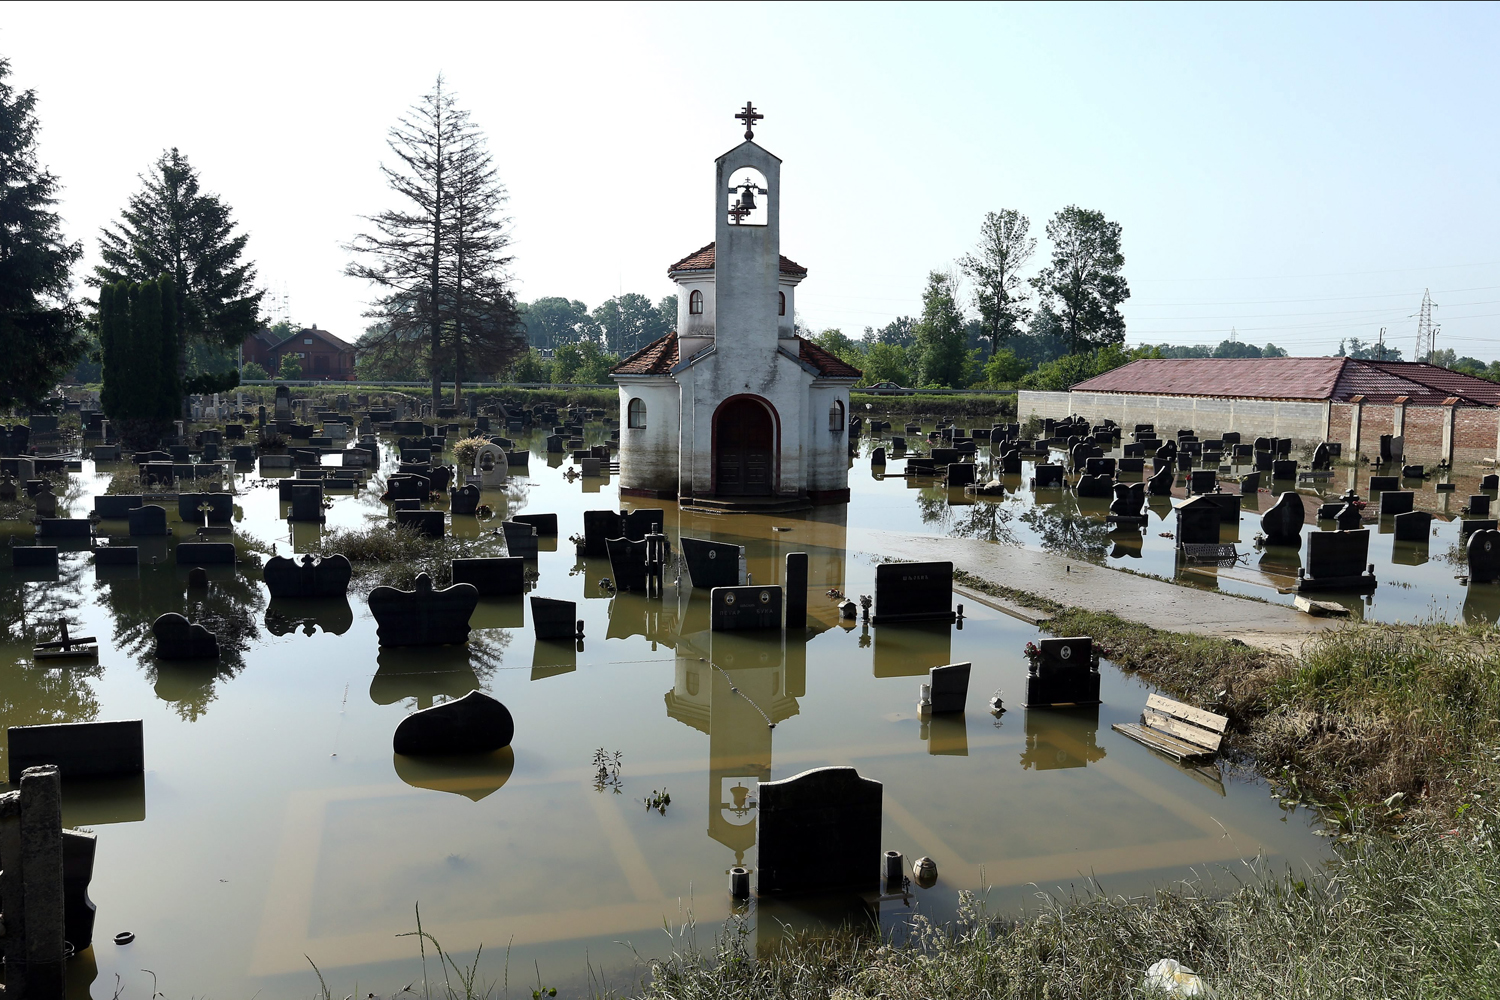 May 23, 2014. A cemetery at the entrance of the town of Bosanski Samac, in the northern part of Bosnia and Herzegovina, some 250 kilometers from the Bosnian capital Sarajevo, is still under flood water.